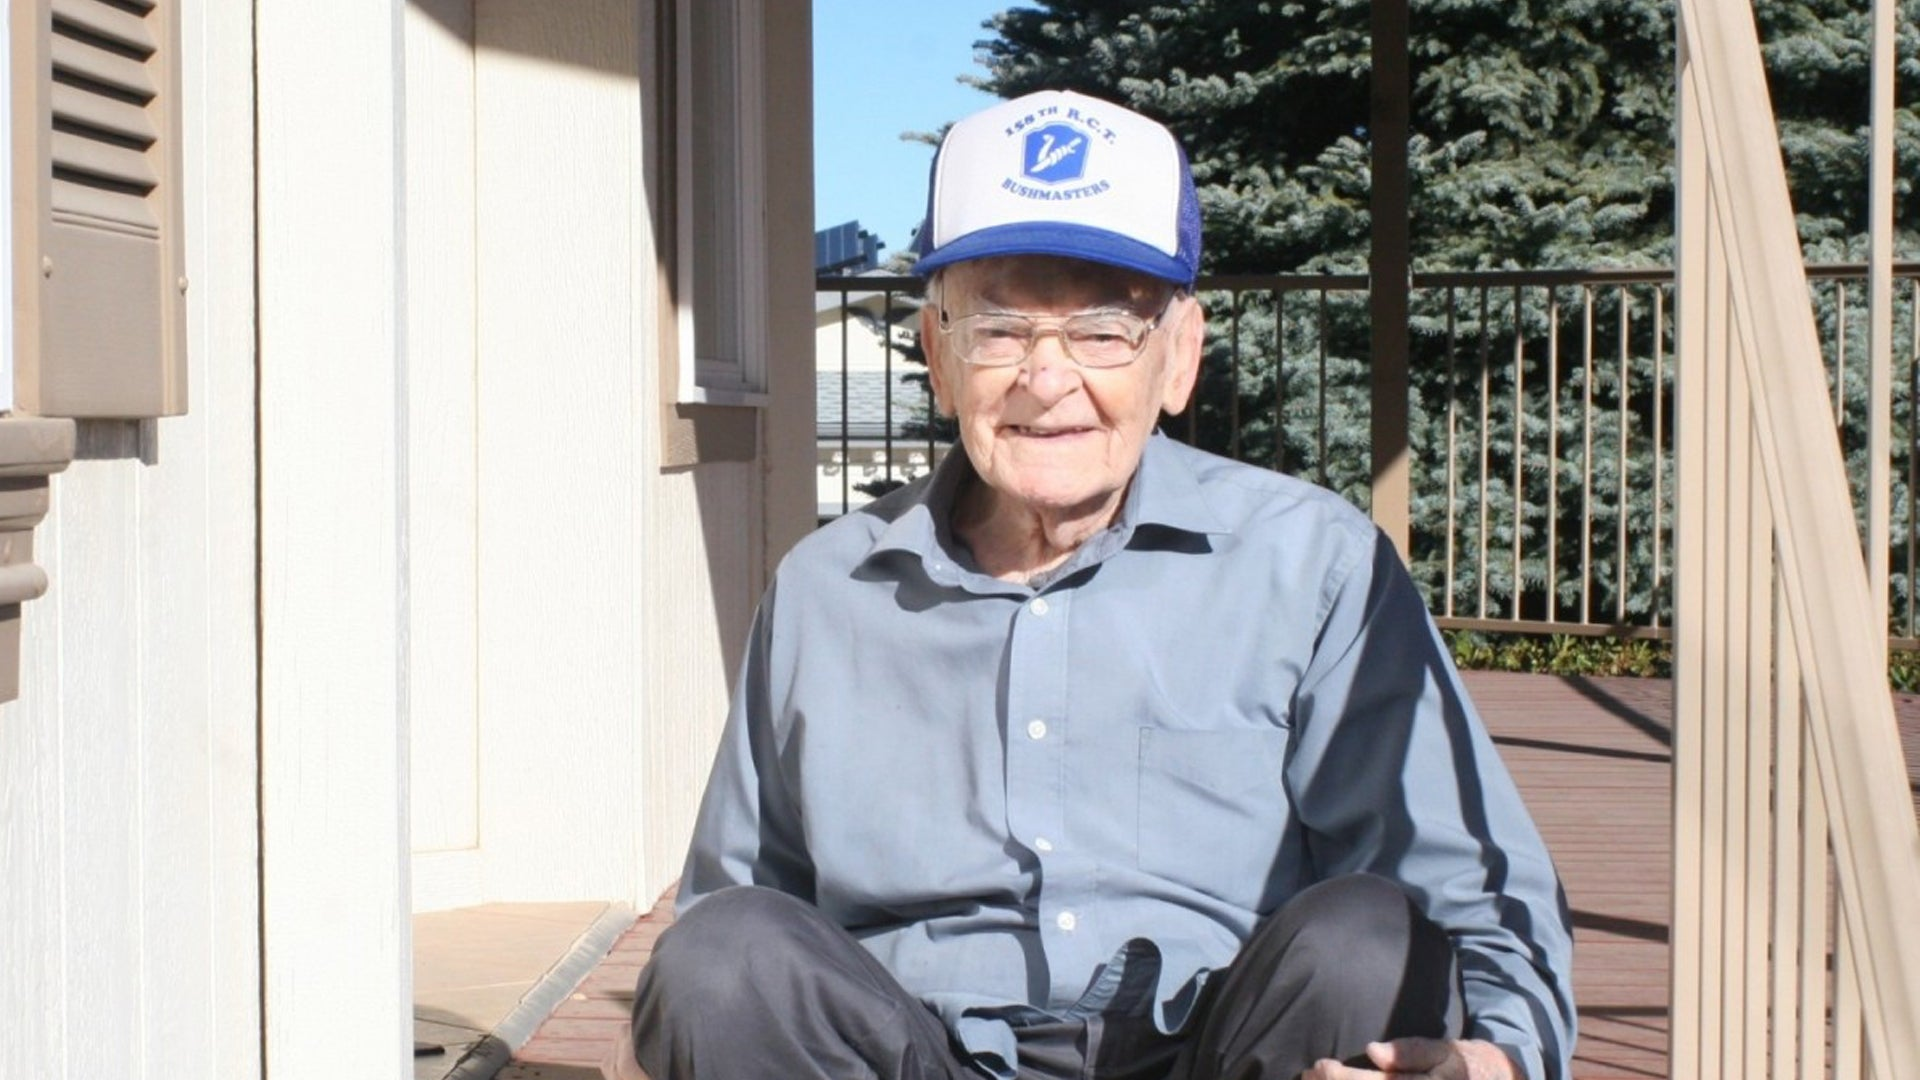 We salute this World War II veteran for surviving two pandemics a century apart